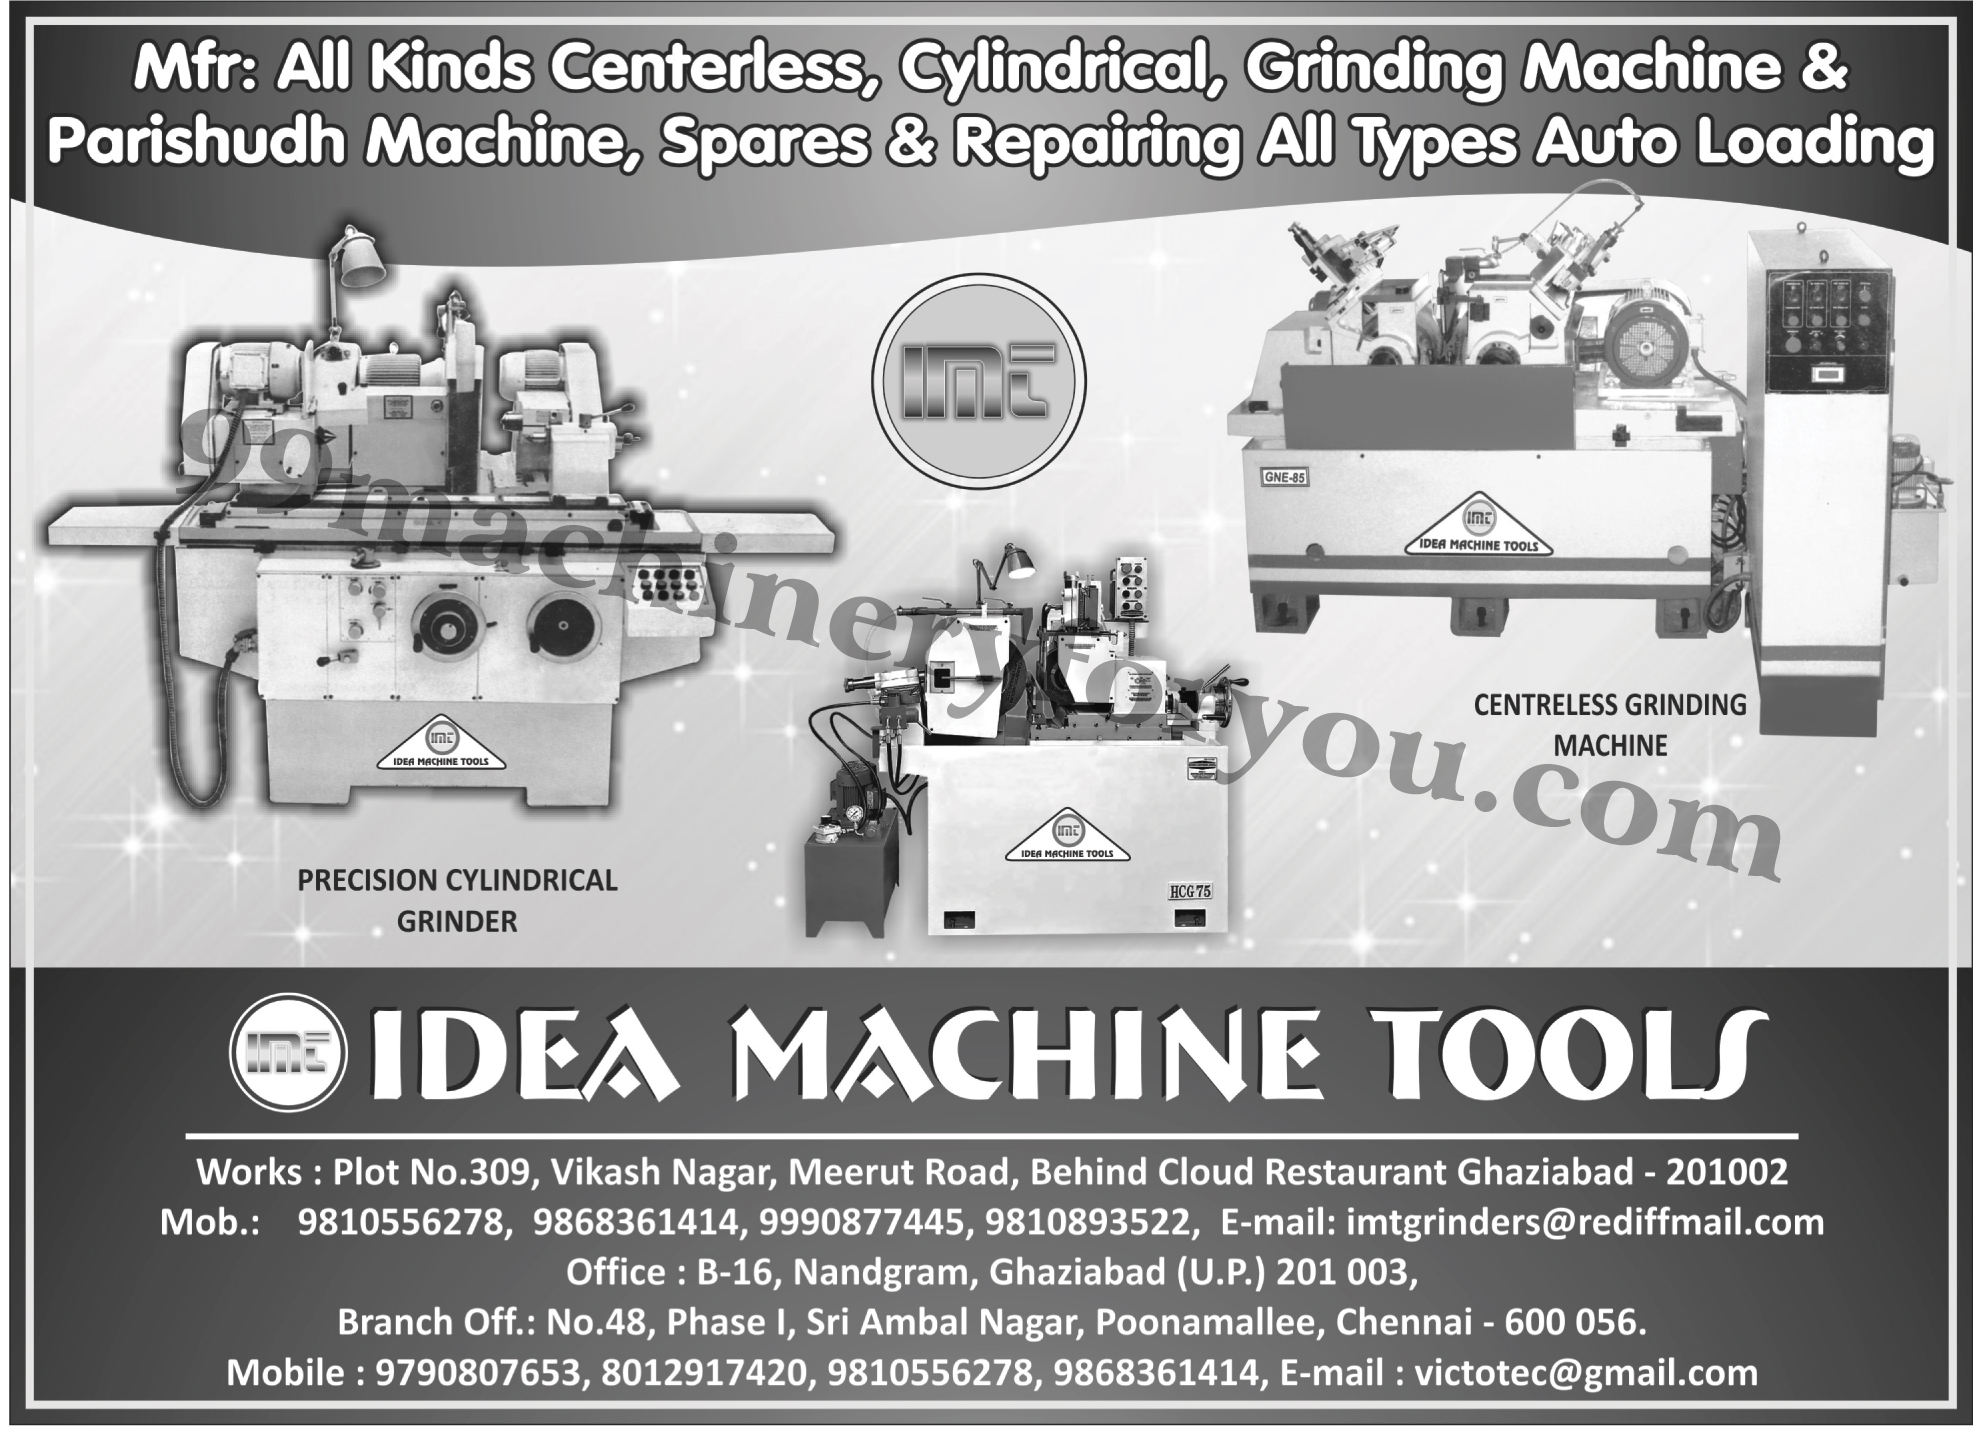 Precision Cylindrical Grinders, Centreless Grinding Machines, Cylindrical Grinding Machines, Parishudh Machines, Cylindrical Grinders,Grinding Machine, Automotive Loading Spares, Automotive Loading Repairing